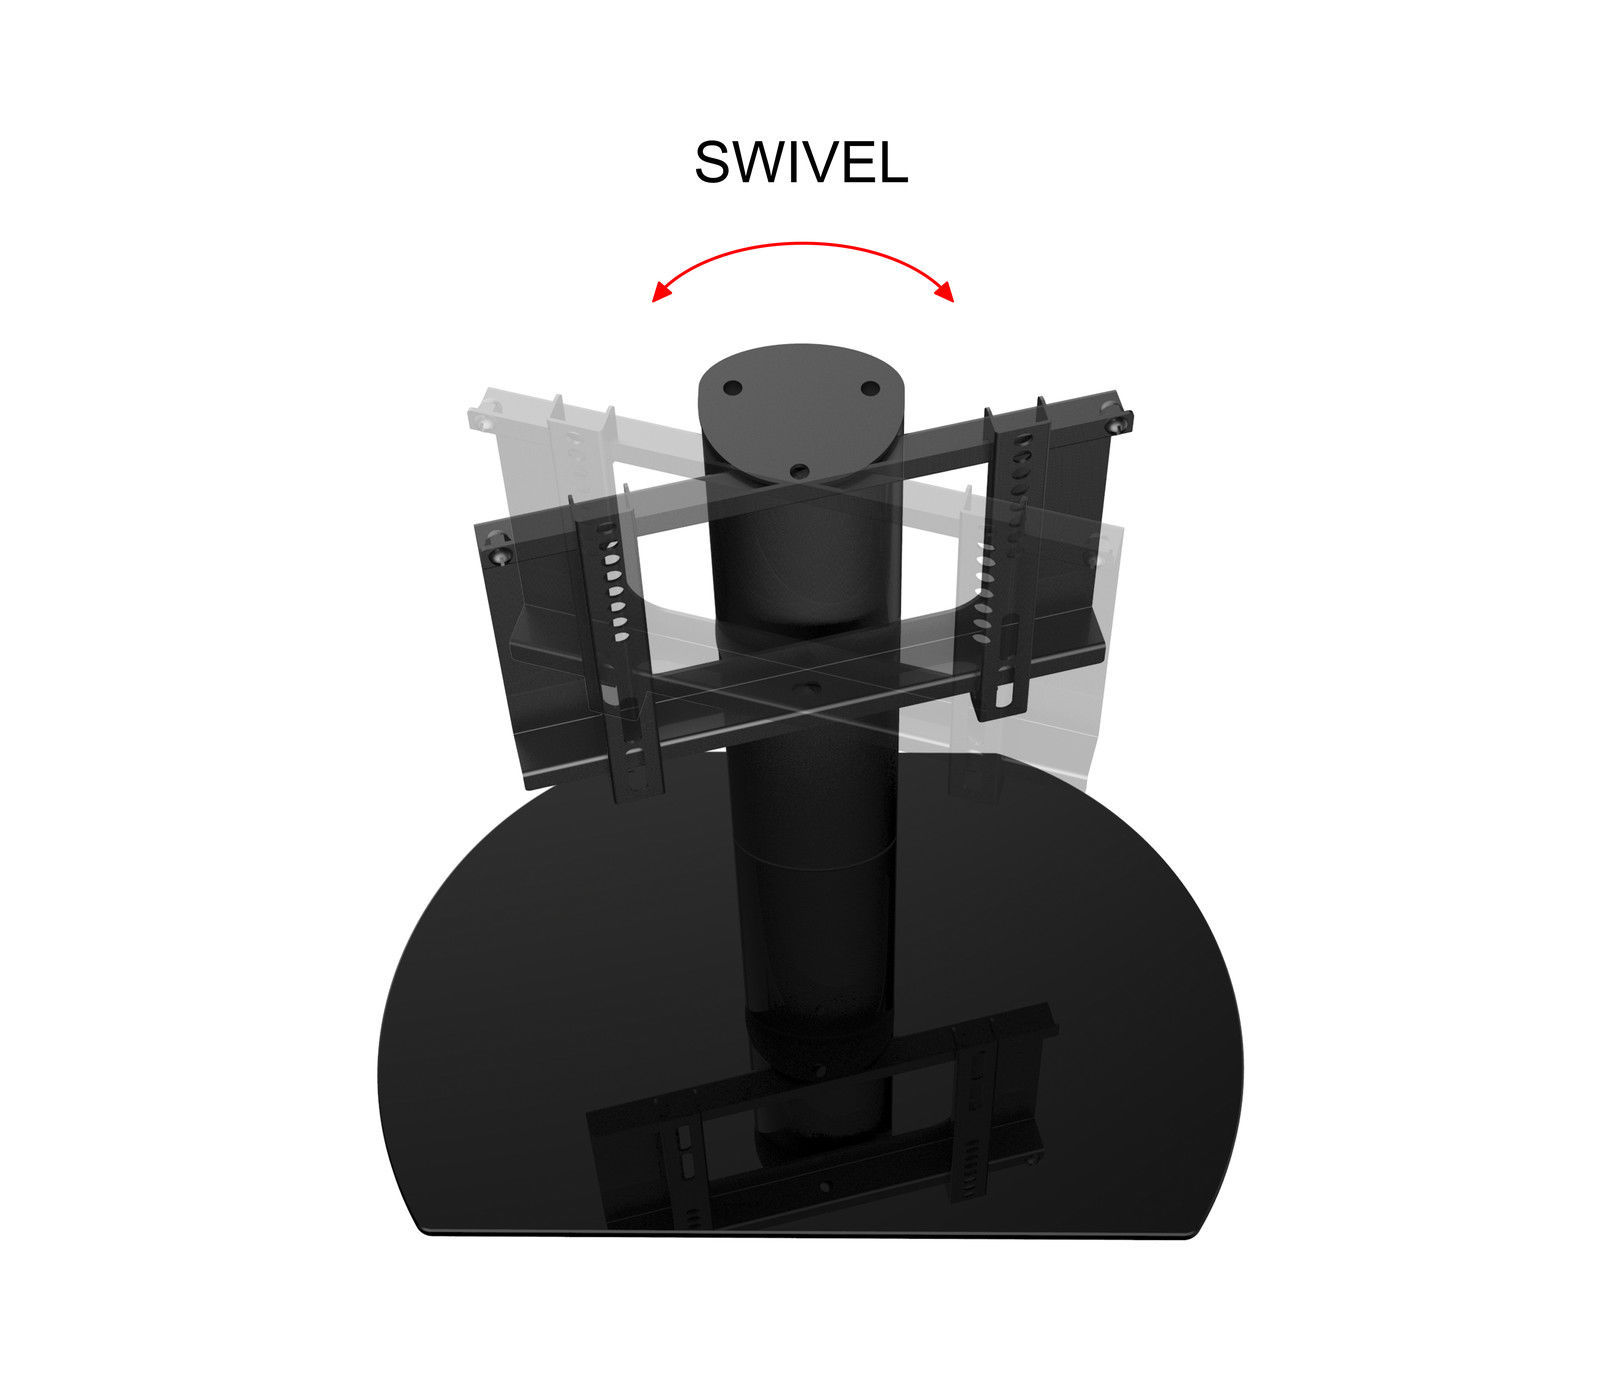 New Replacement Swivel TV Stand / Base for Vizio M320VT